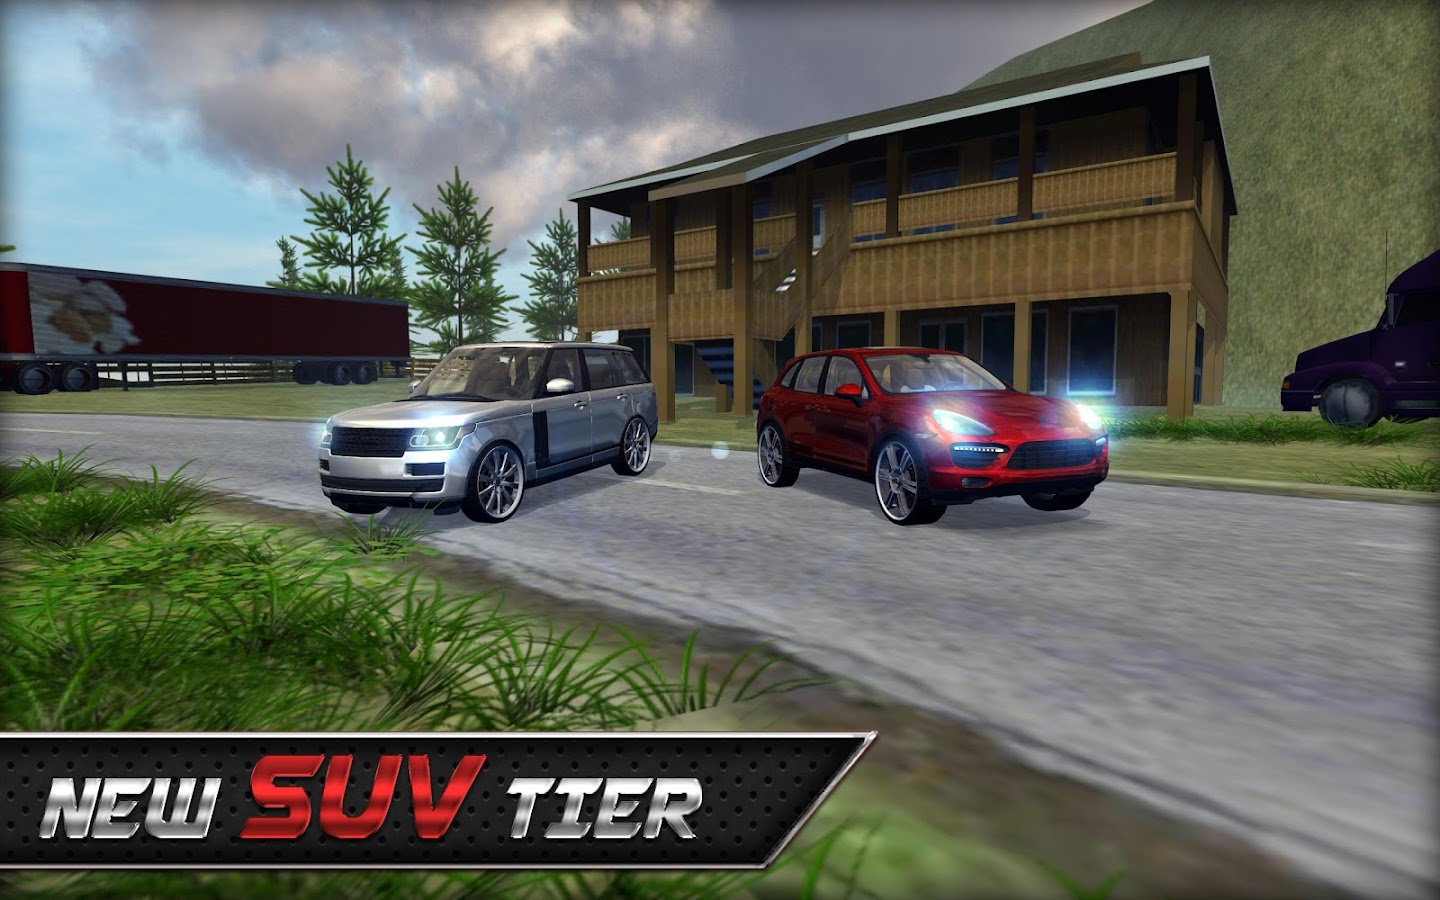 Super car city driving sim free games free online - Real Driving 3d Screenshot